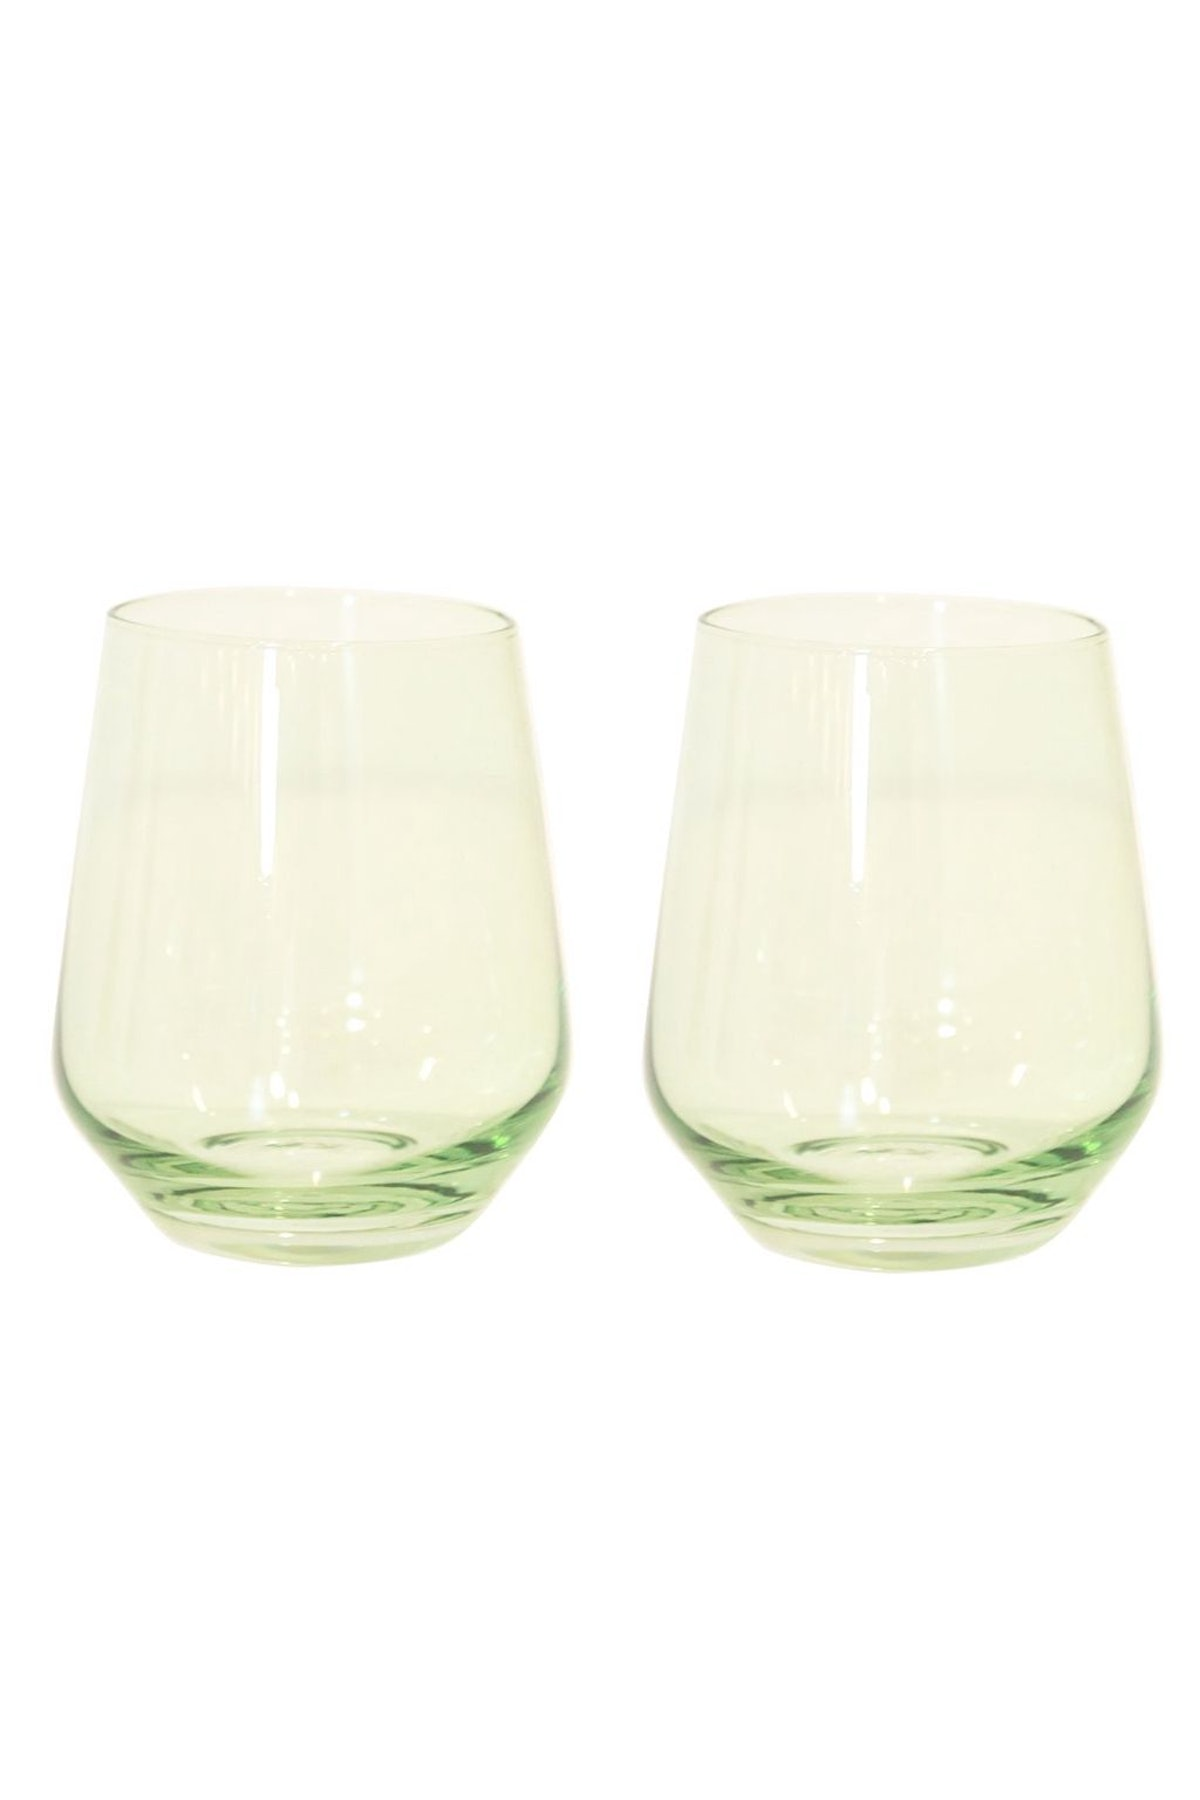 Colored Stemless Wine Glasses in Mint Green - Set of 2: image 1